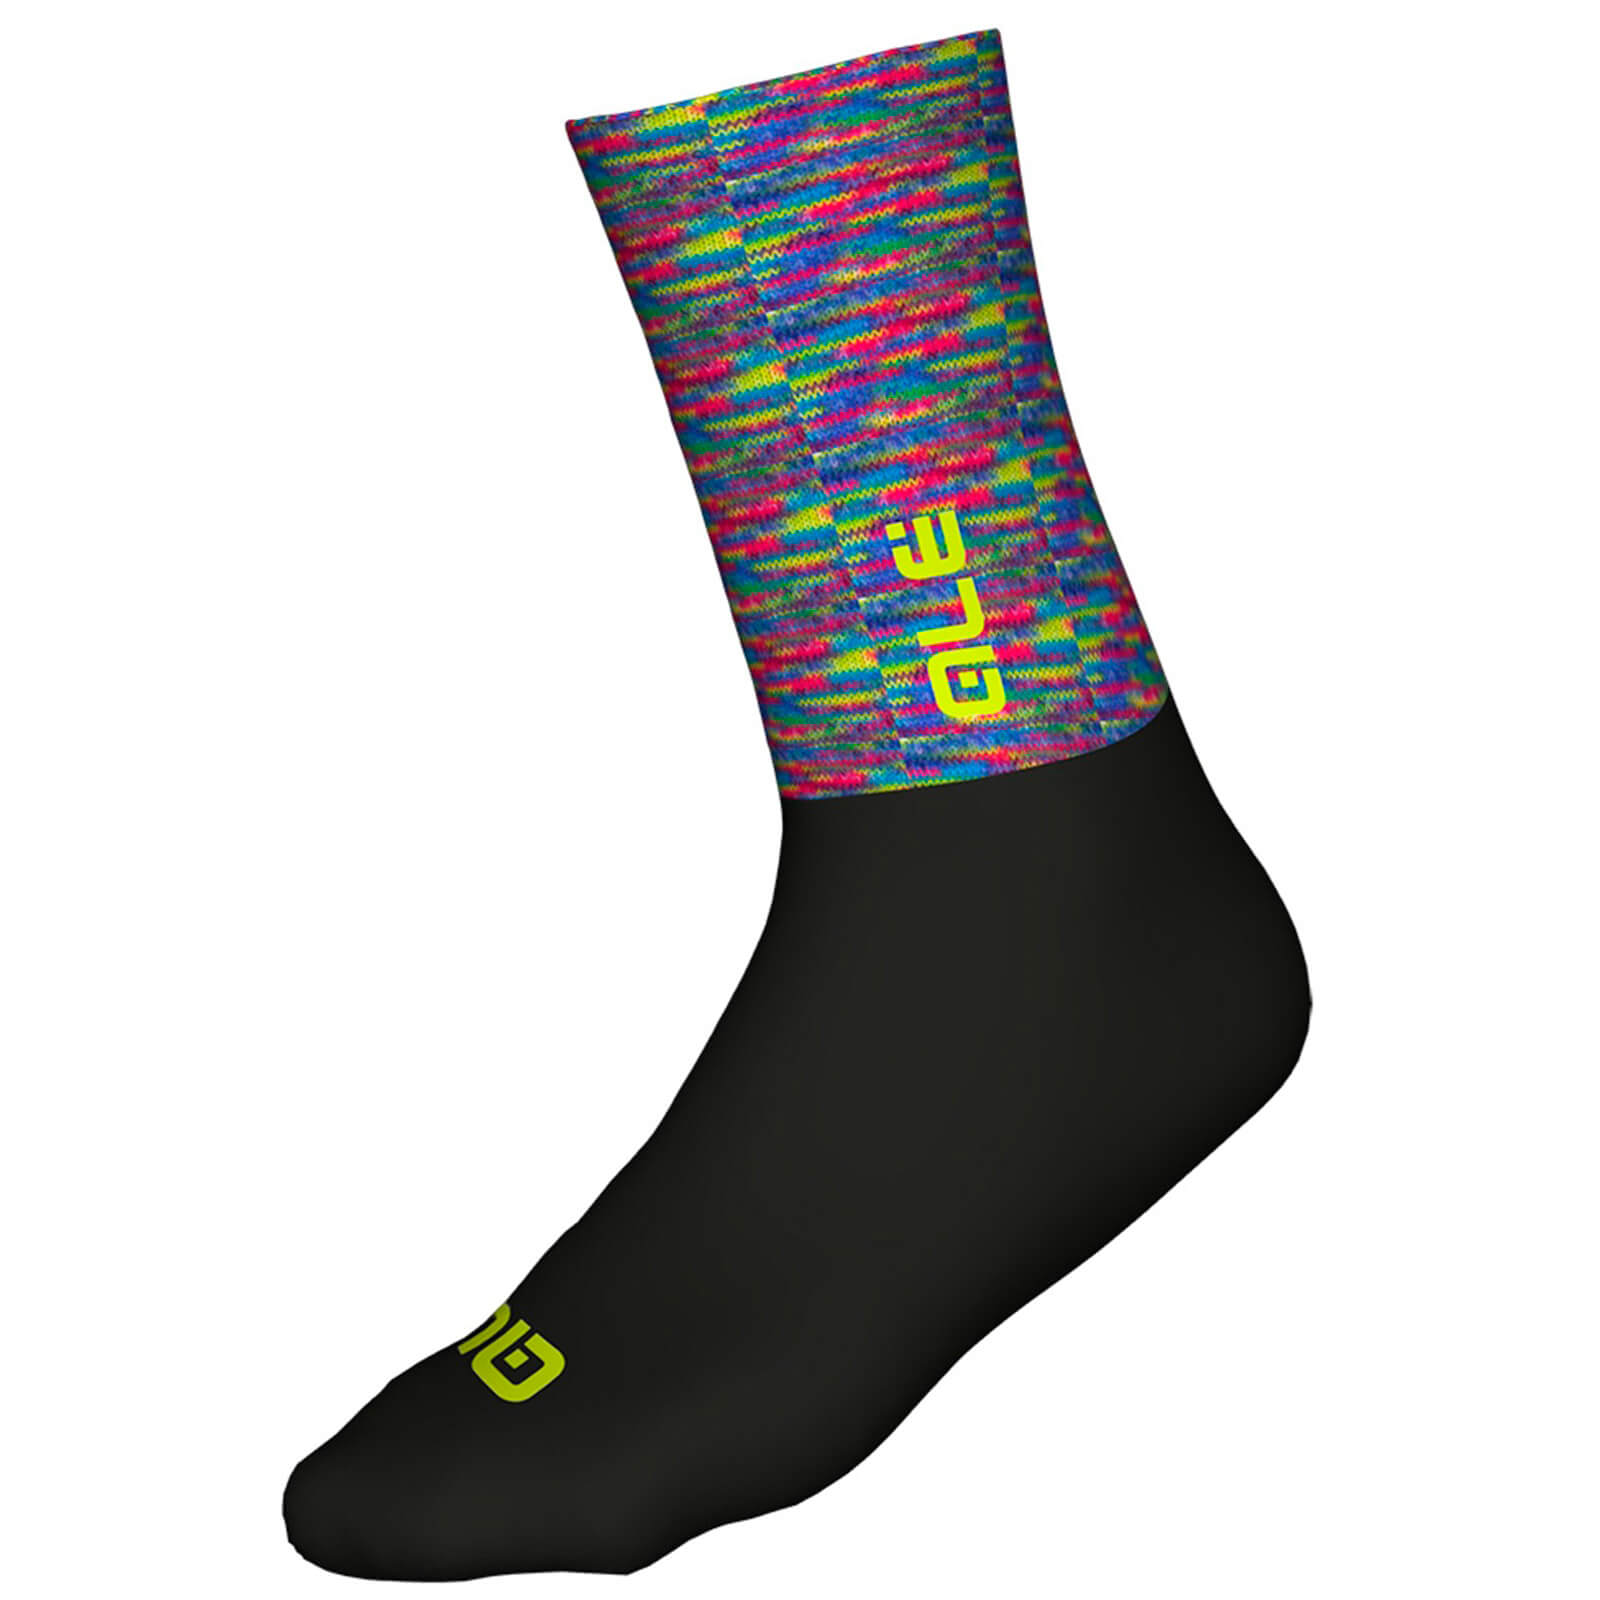 Alé Merino Logo Winter Socks - Multi